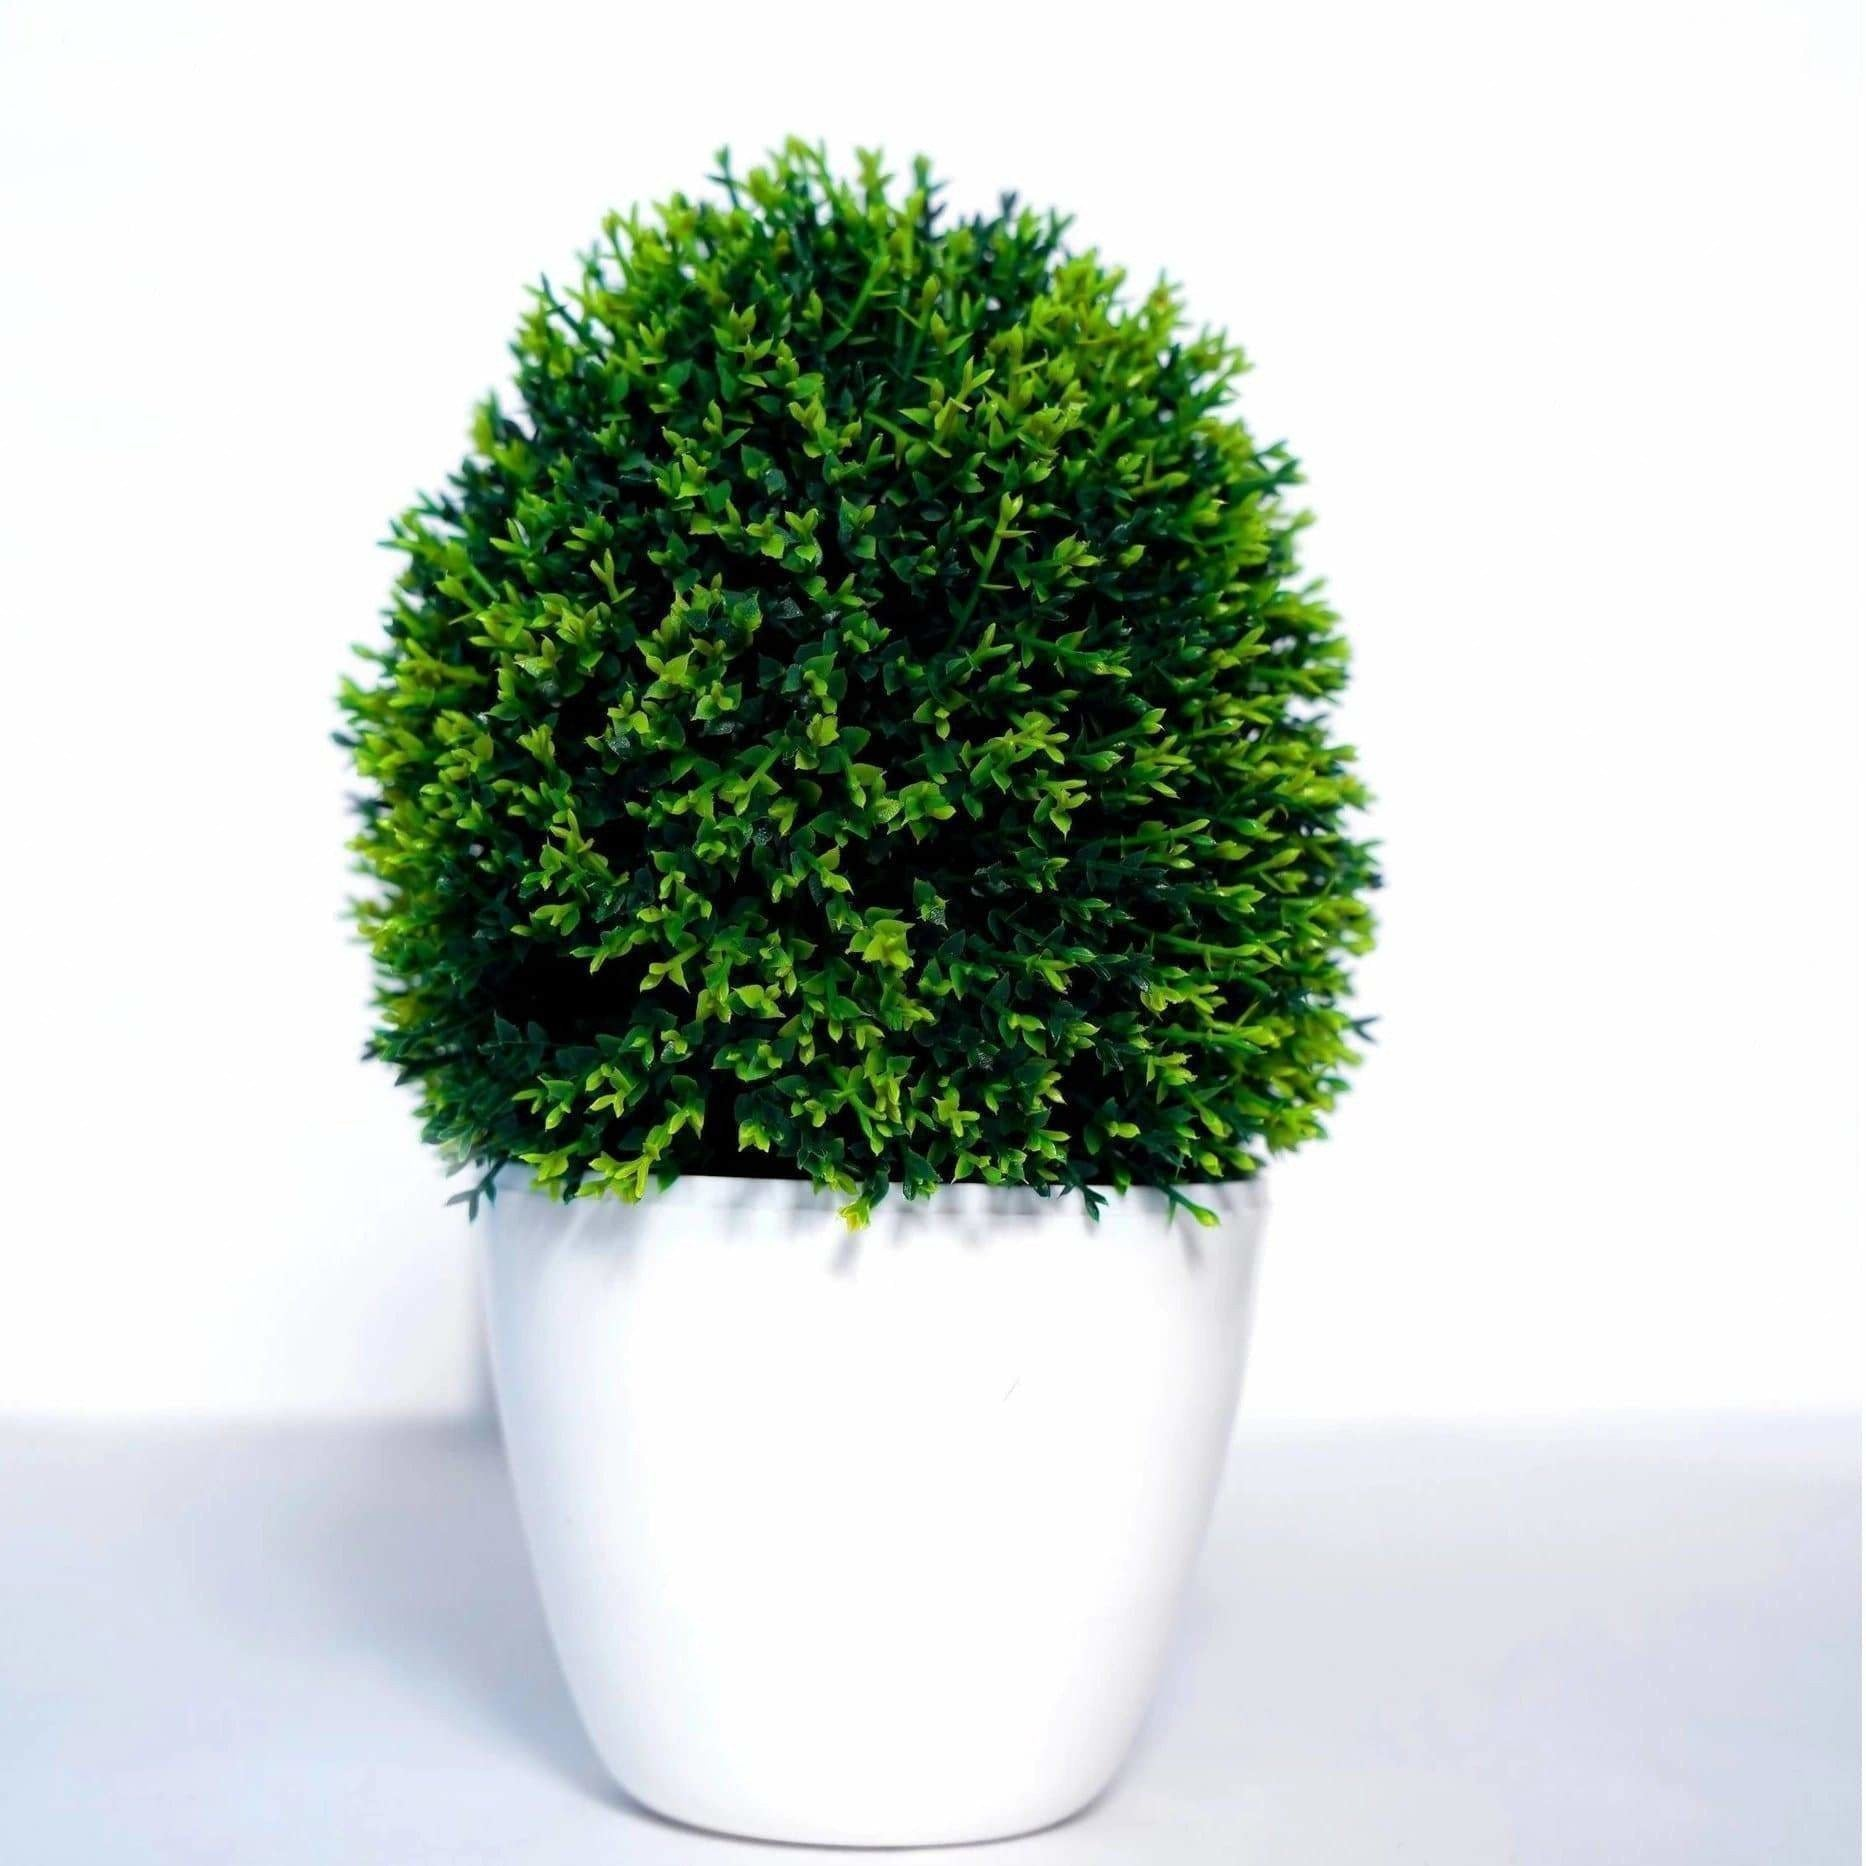 Chahat Decorative Artificial plant For Home